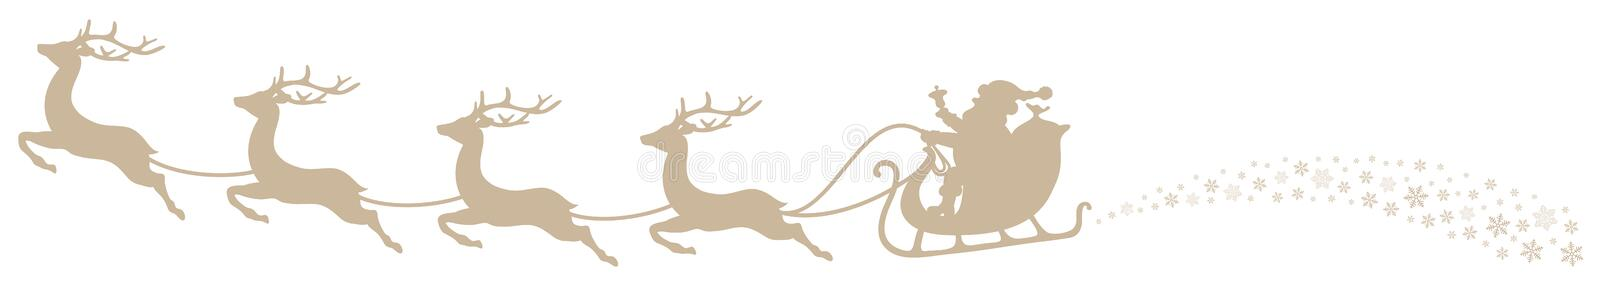 Beige di Sleigh Santa And Flying Reindeers Swirl di Natale illustrazione di stock